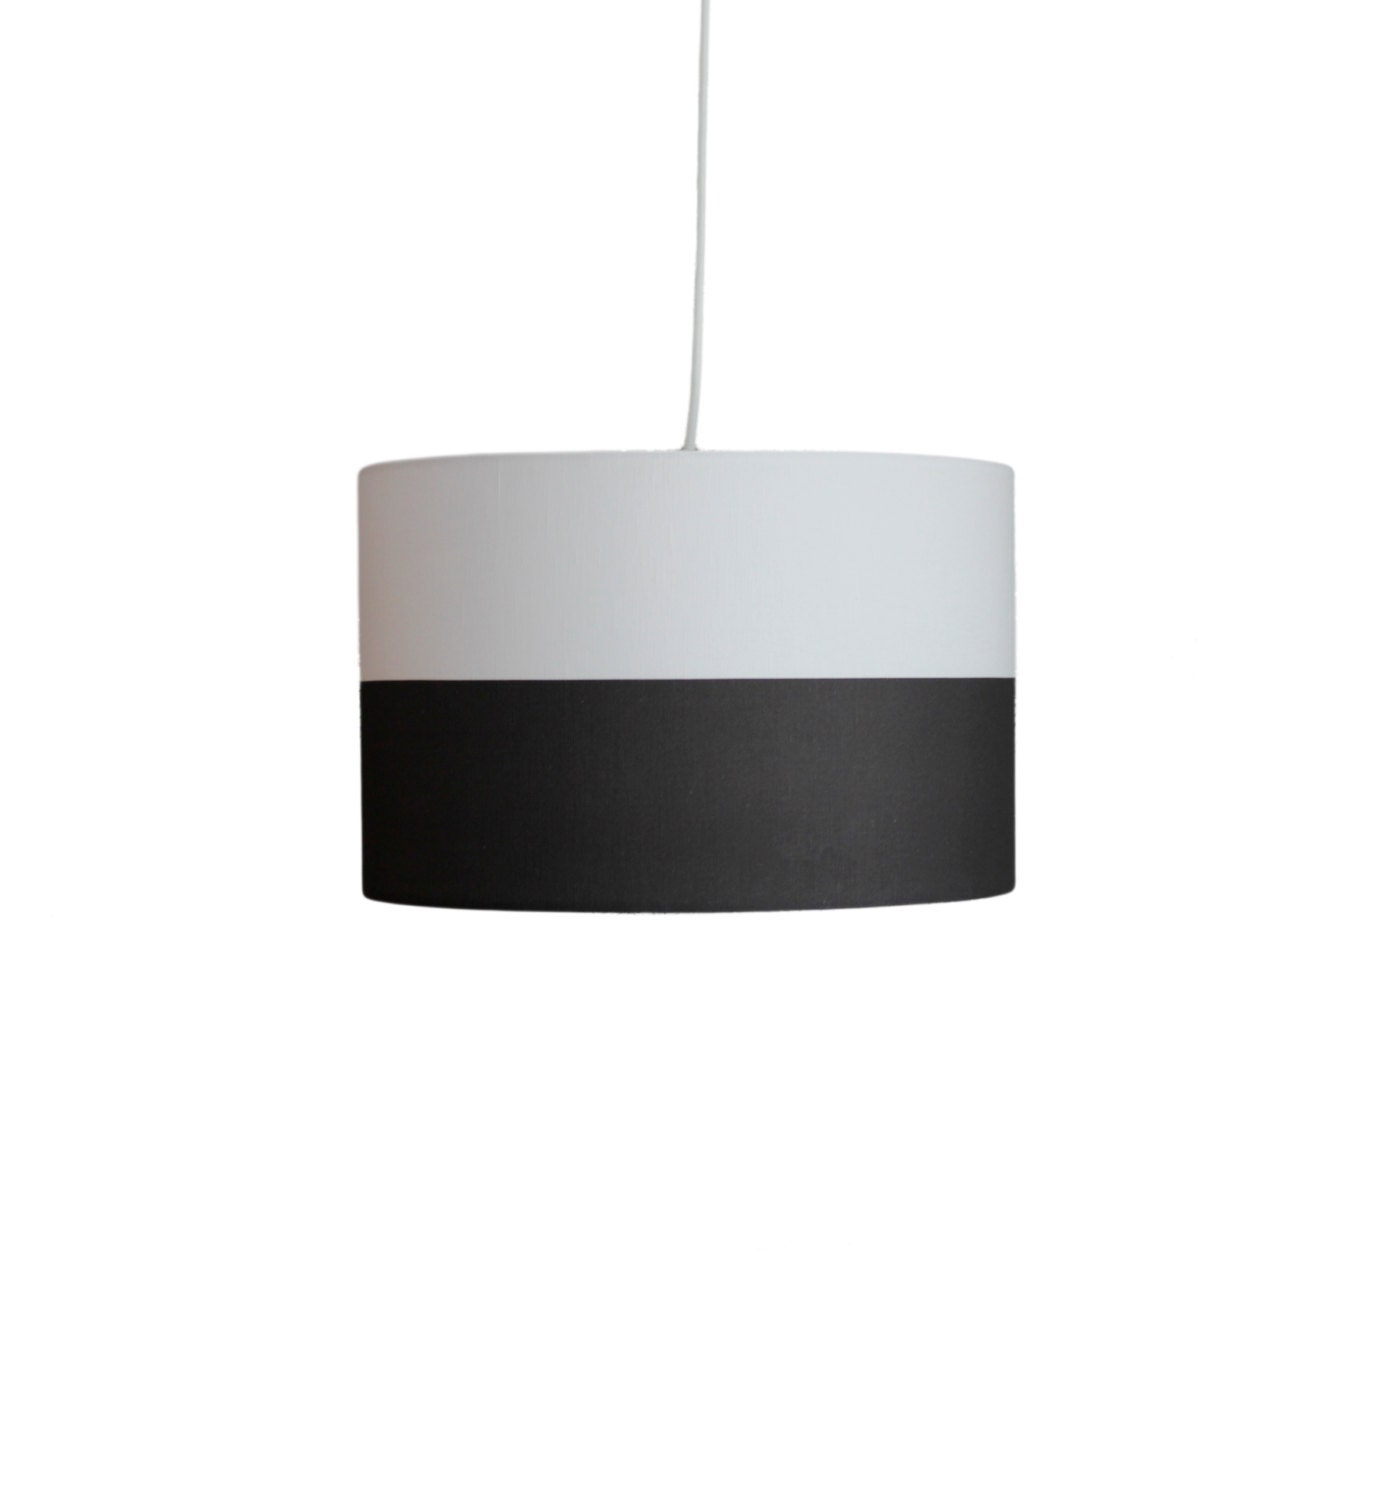 drum pendant light black and white color by mooddesignstudio